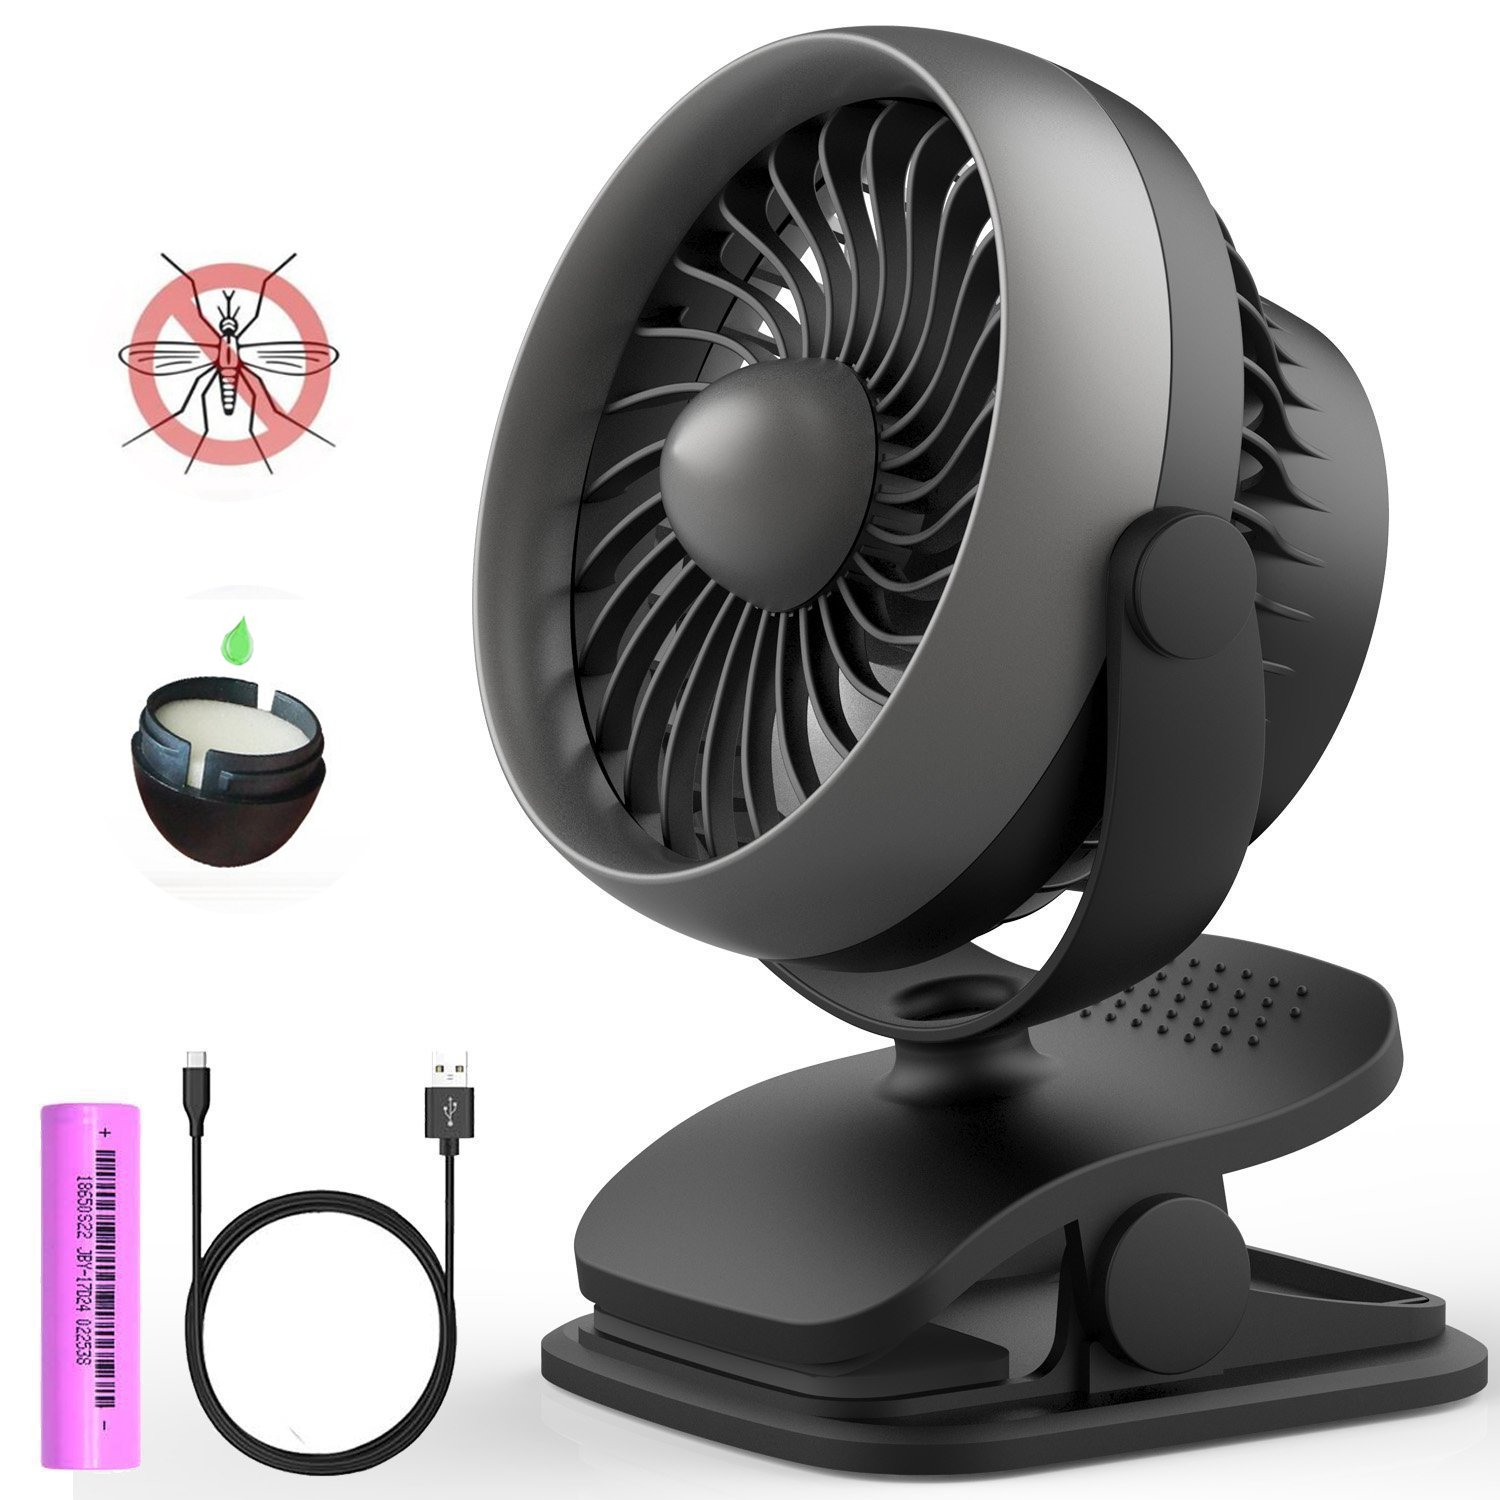 Clip on Fan, Portable Rechargeable Battery Operated Fan Small Desk Fan for Table, Office, Camping, Dorm, Baby Stroller by Anglink